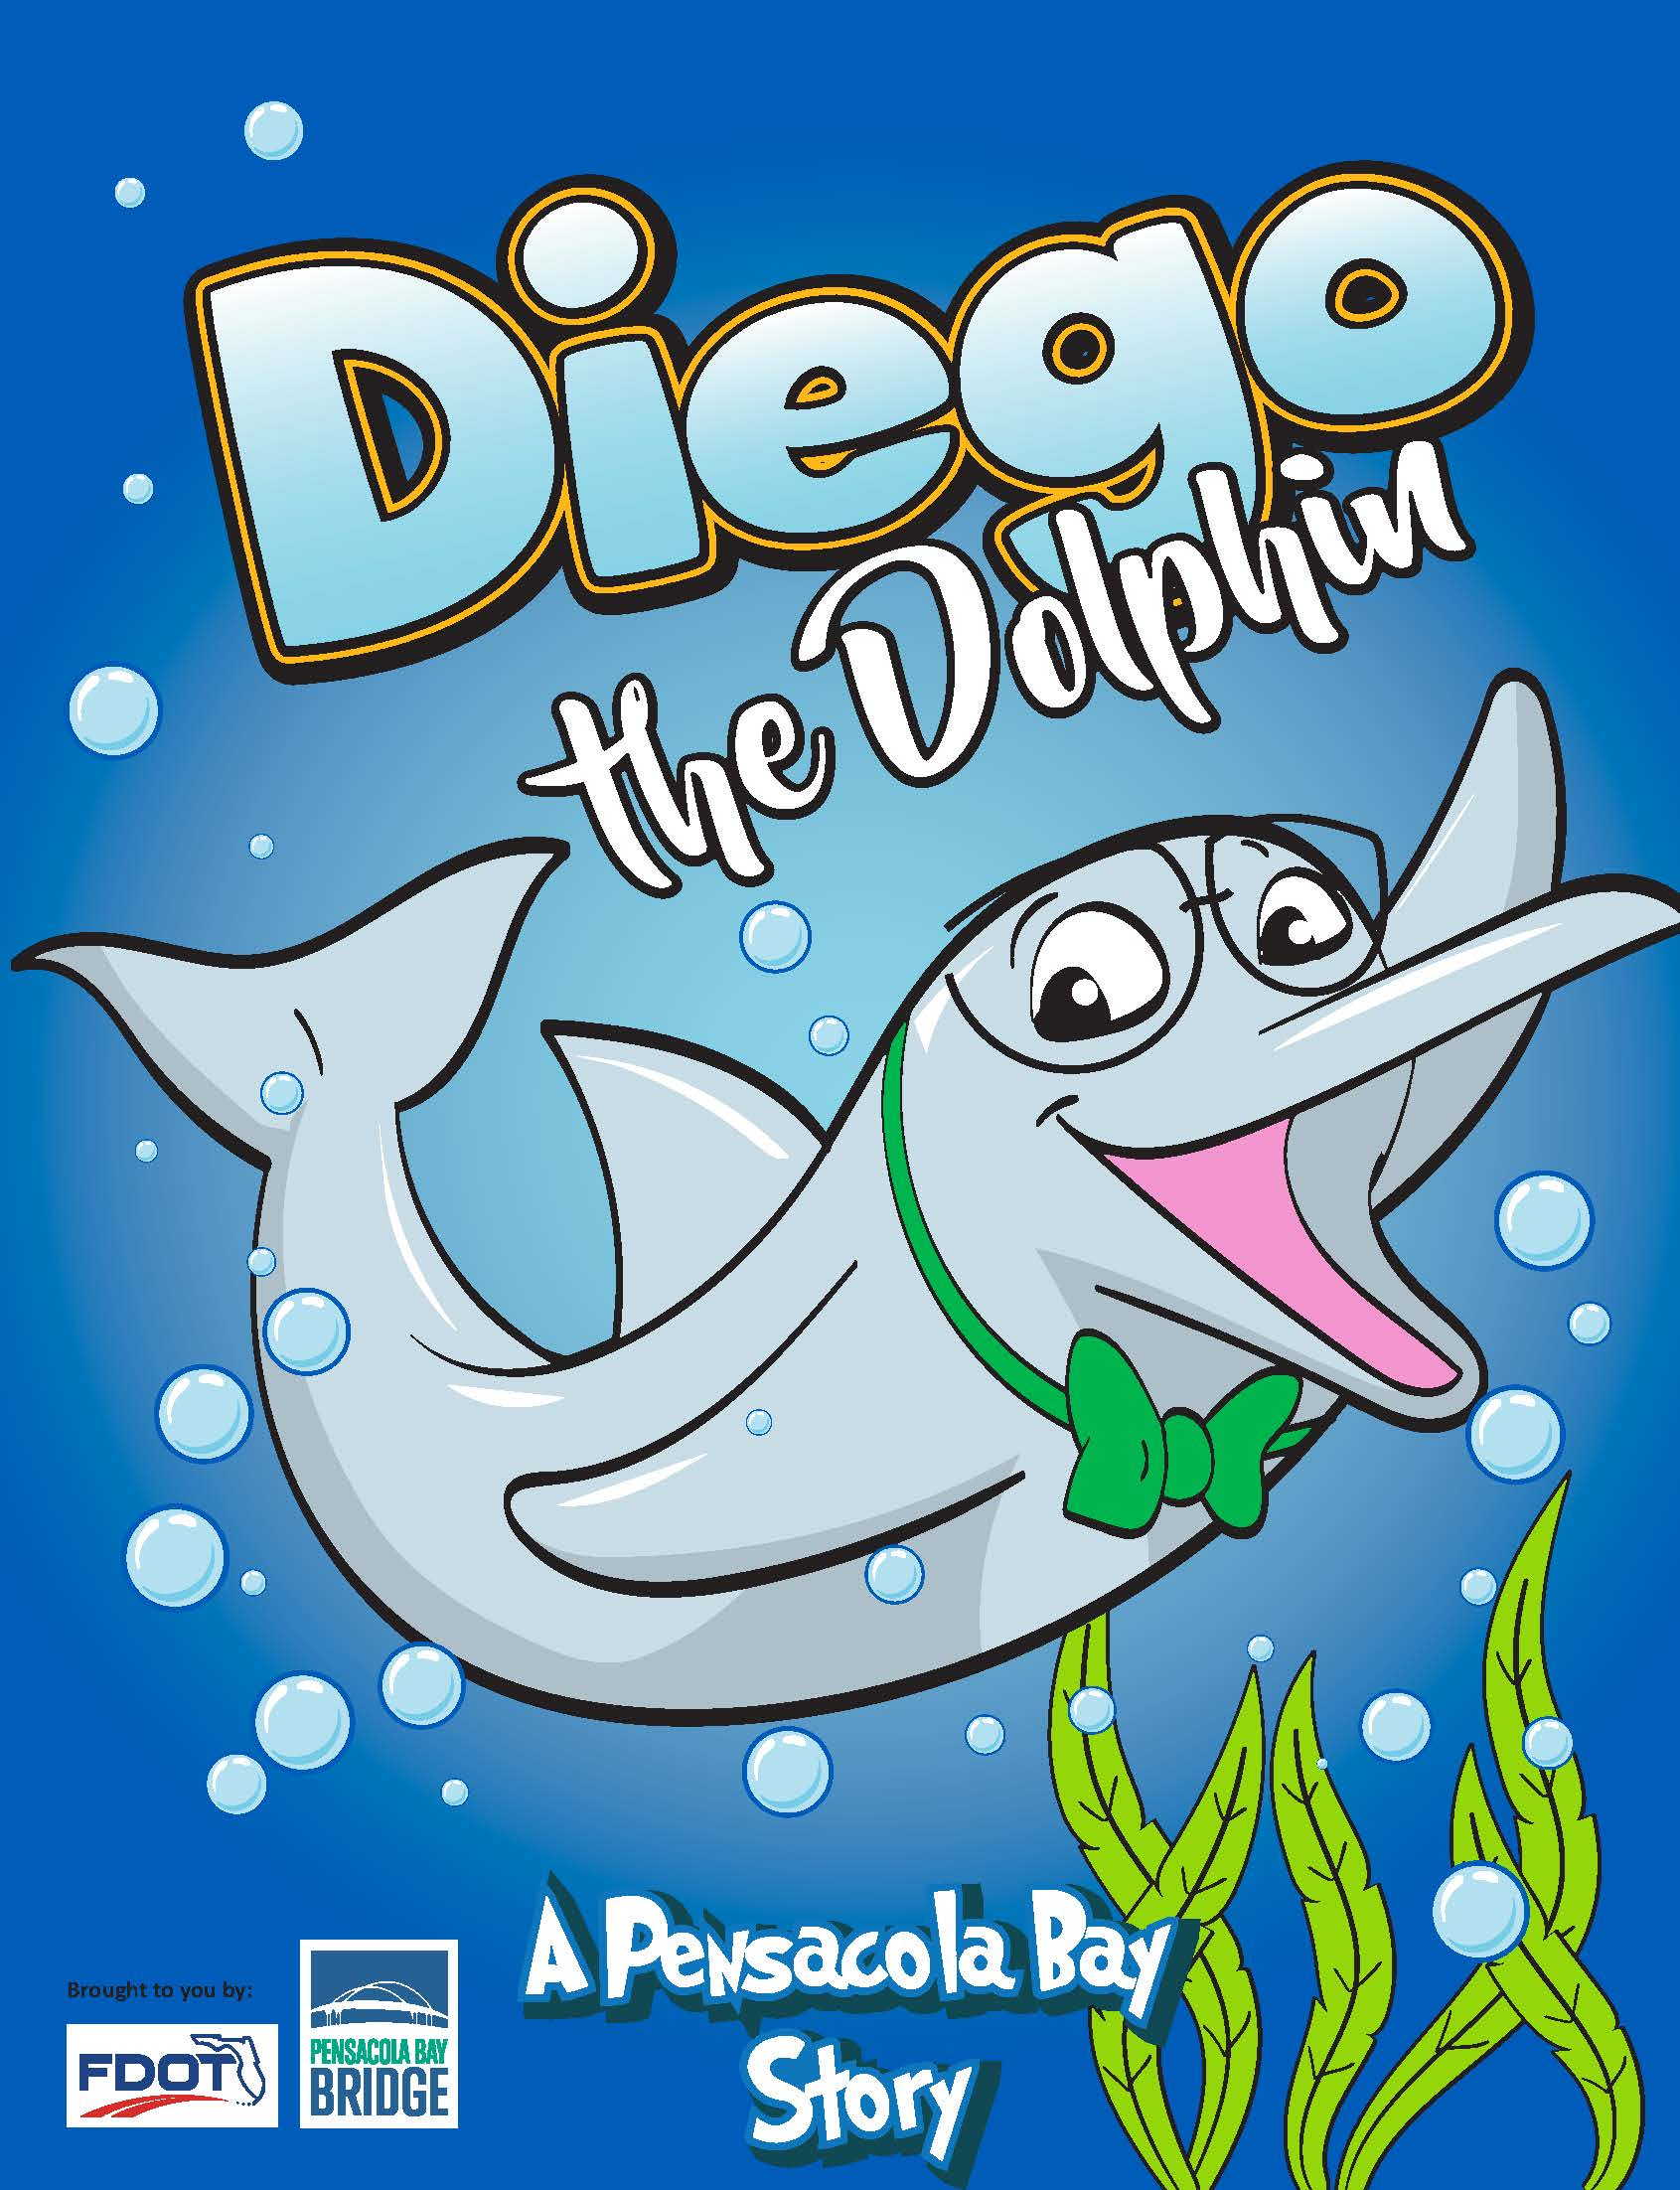 Diego the Dolphin